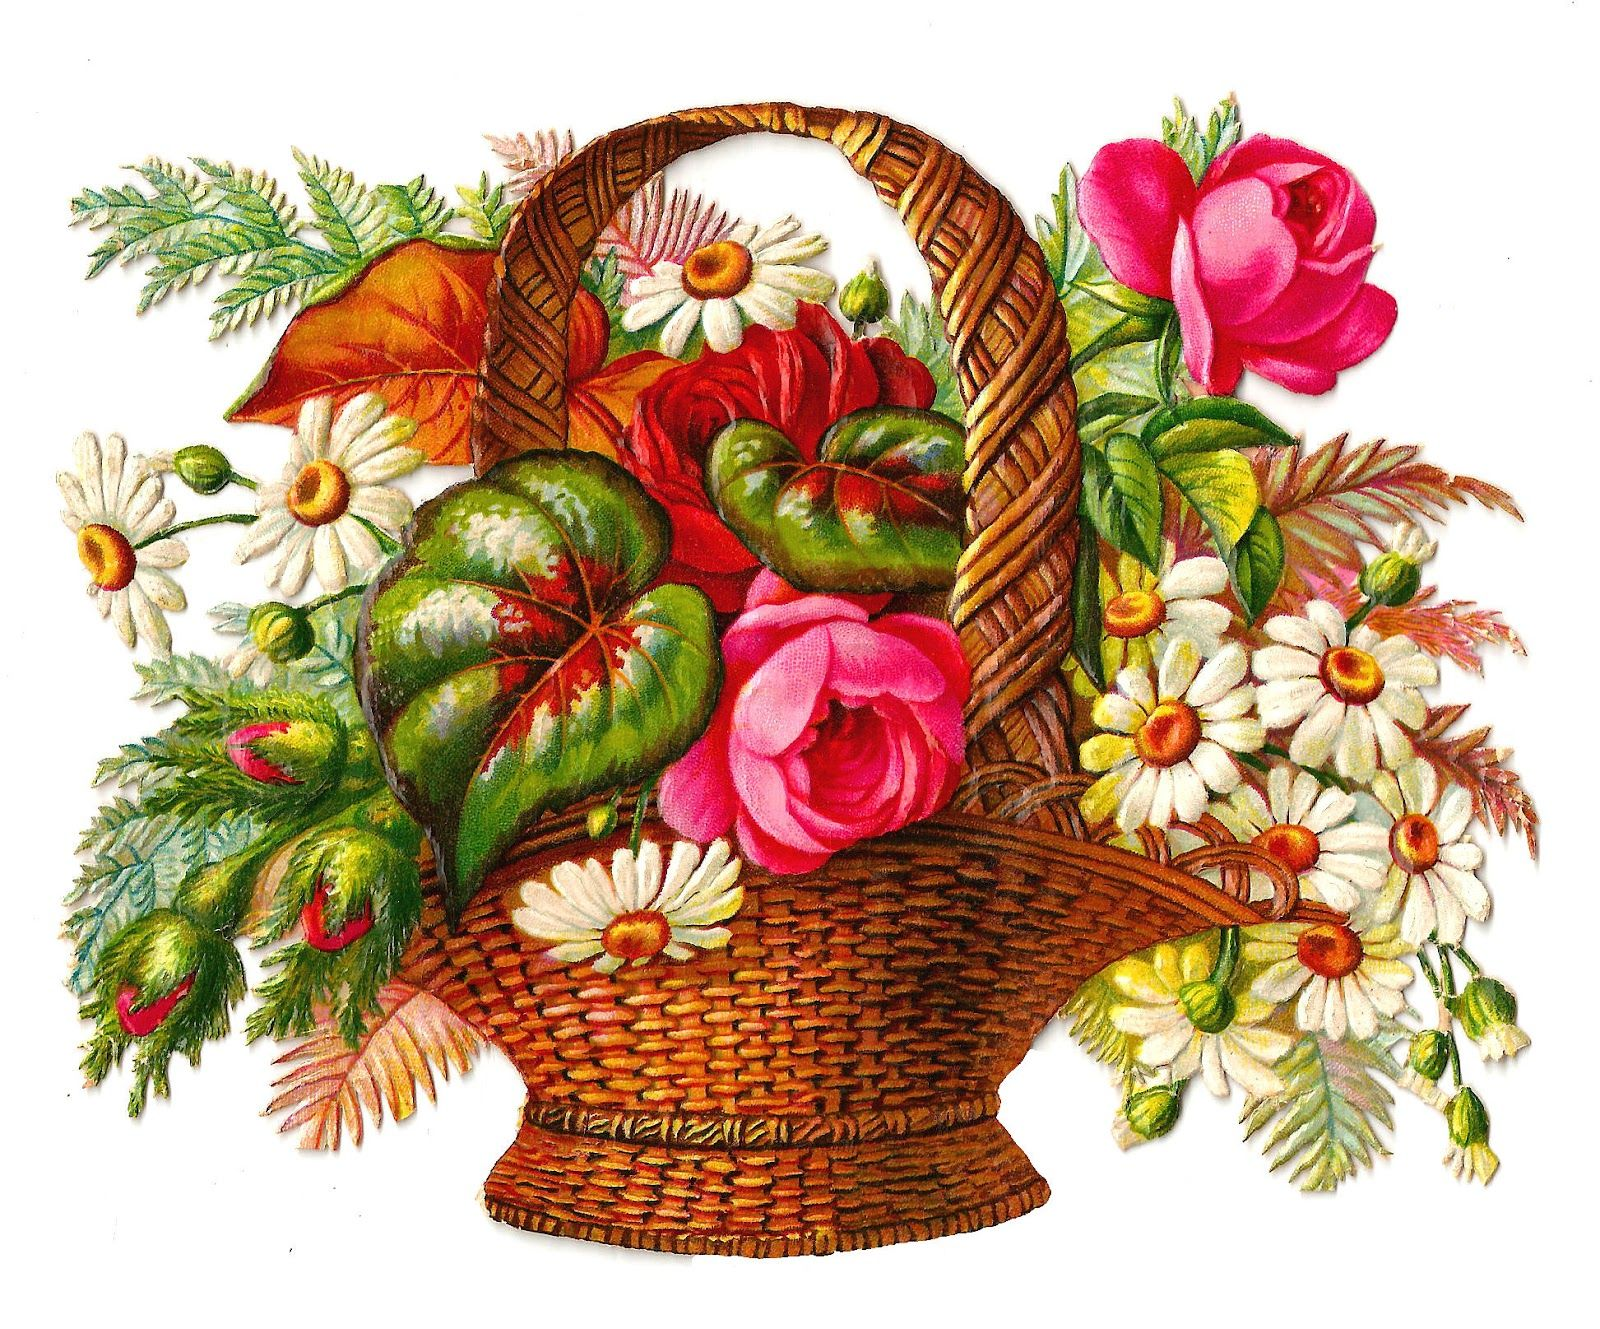 Free Images of Flower Bouquets | Free Flower Clip Art: Victorian Die ...